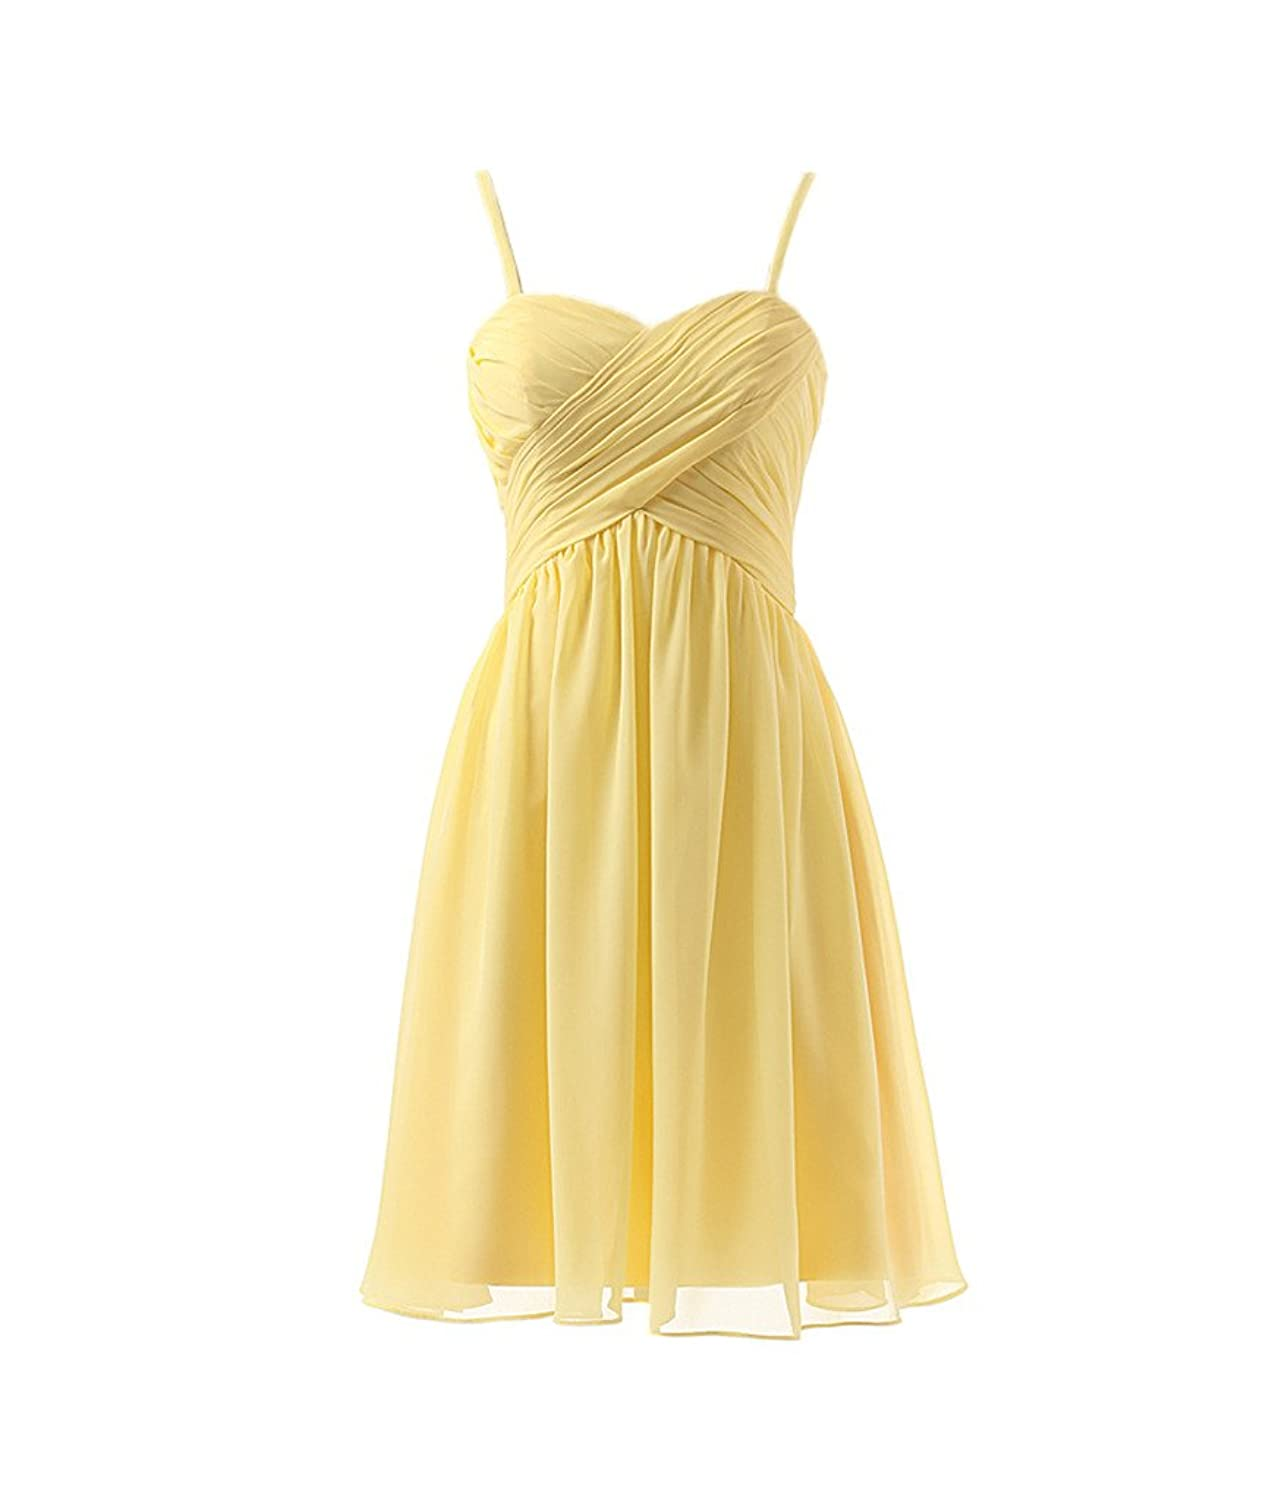 Fanmu Womens Short Chiffon Homecoming Cocktail Dress Bridesmaid Gown